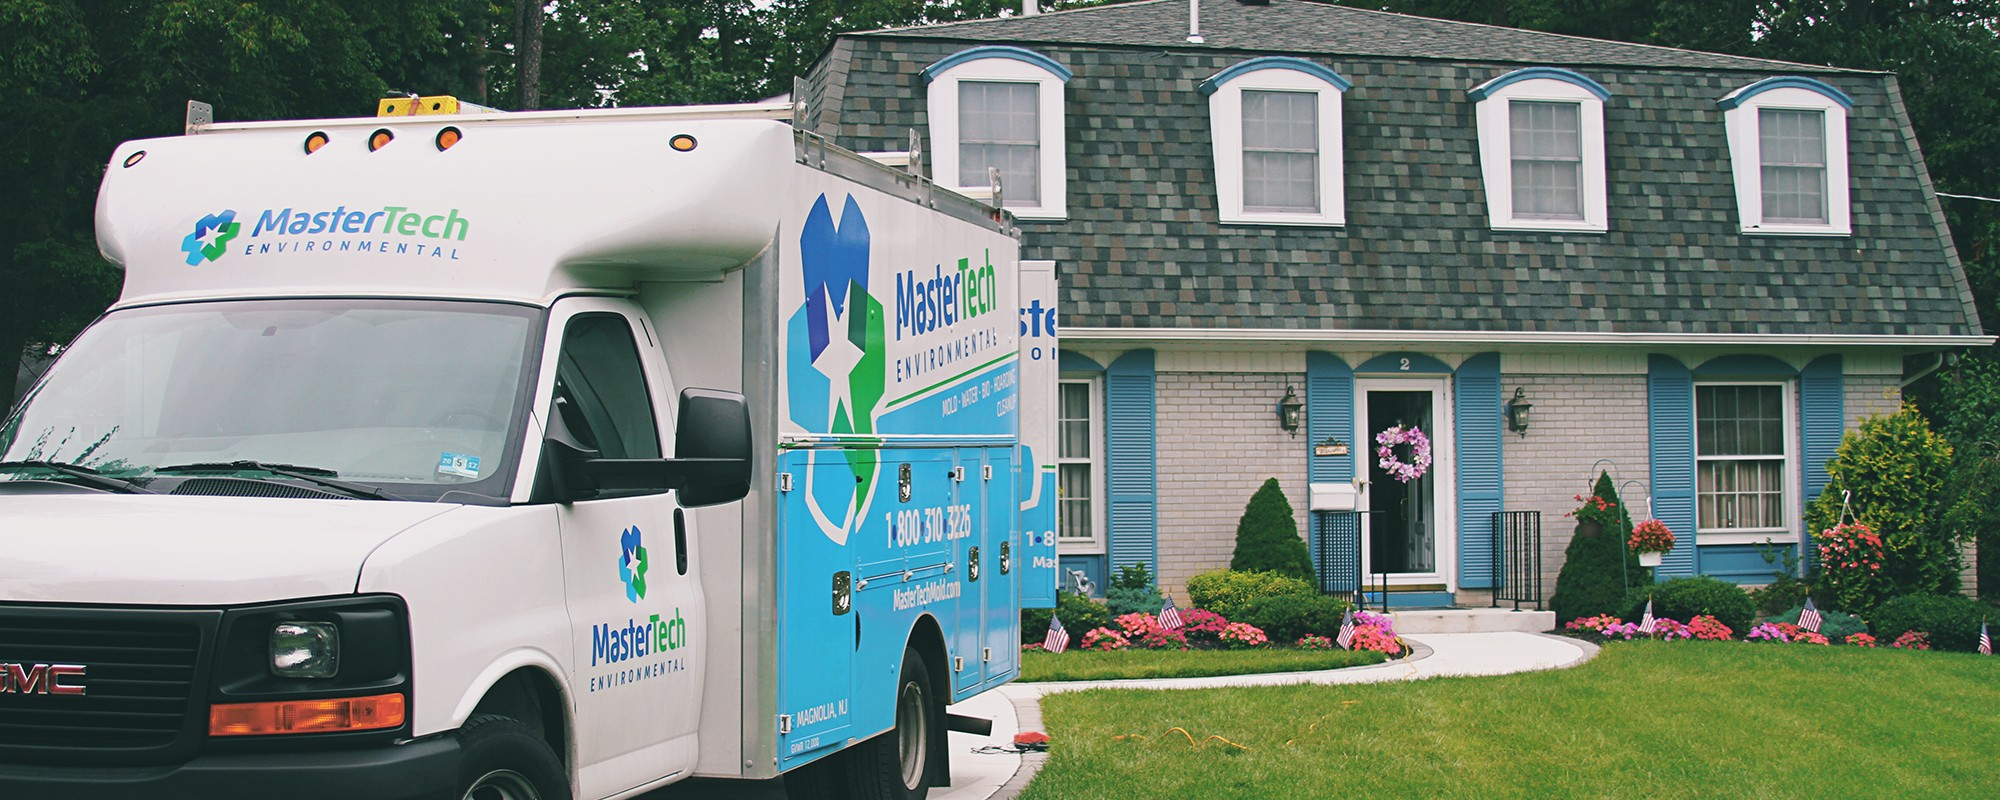 hoarding-cleanup-sanitization-disinfection-nj